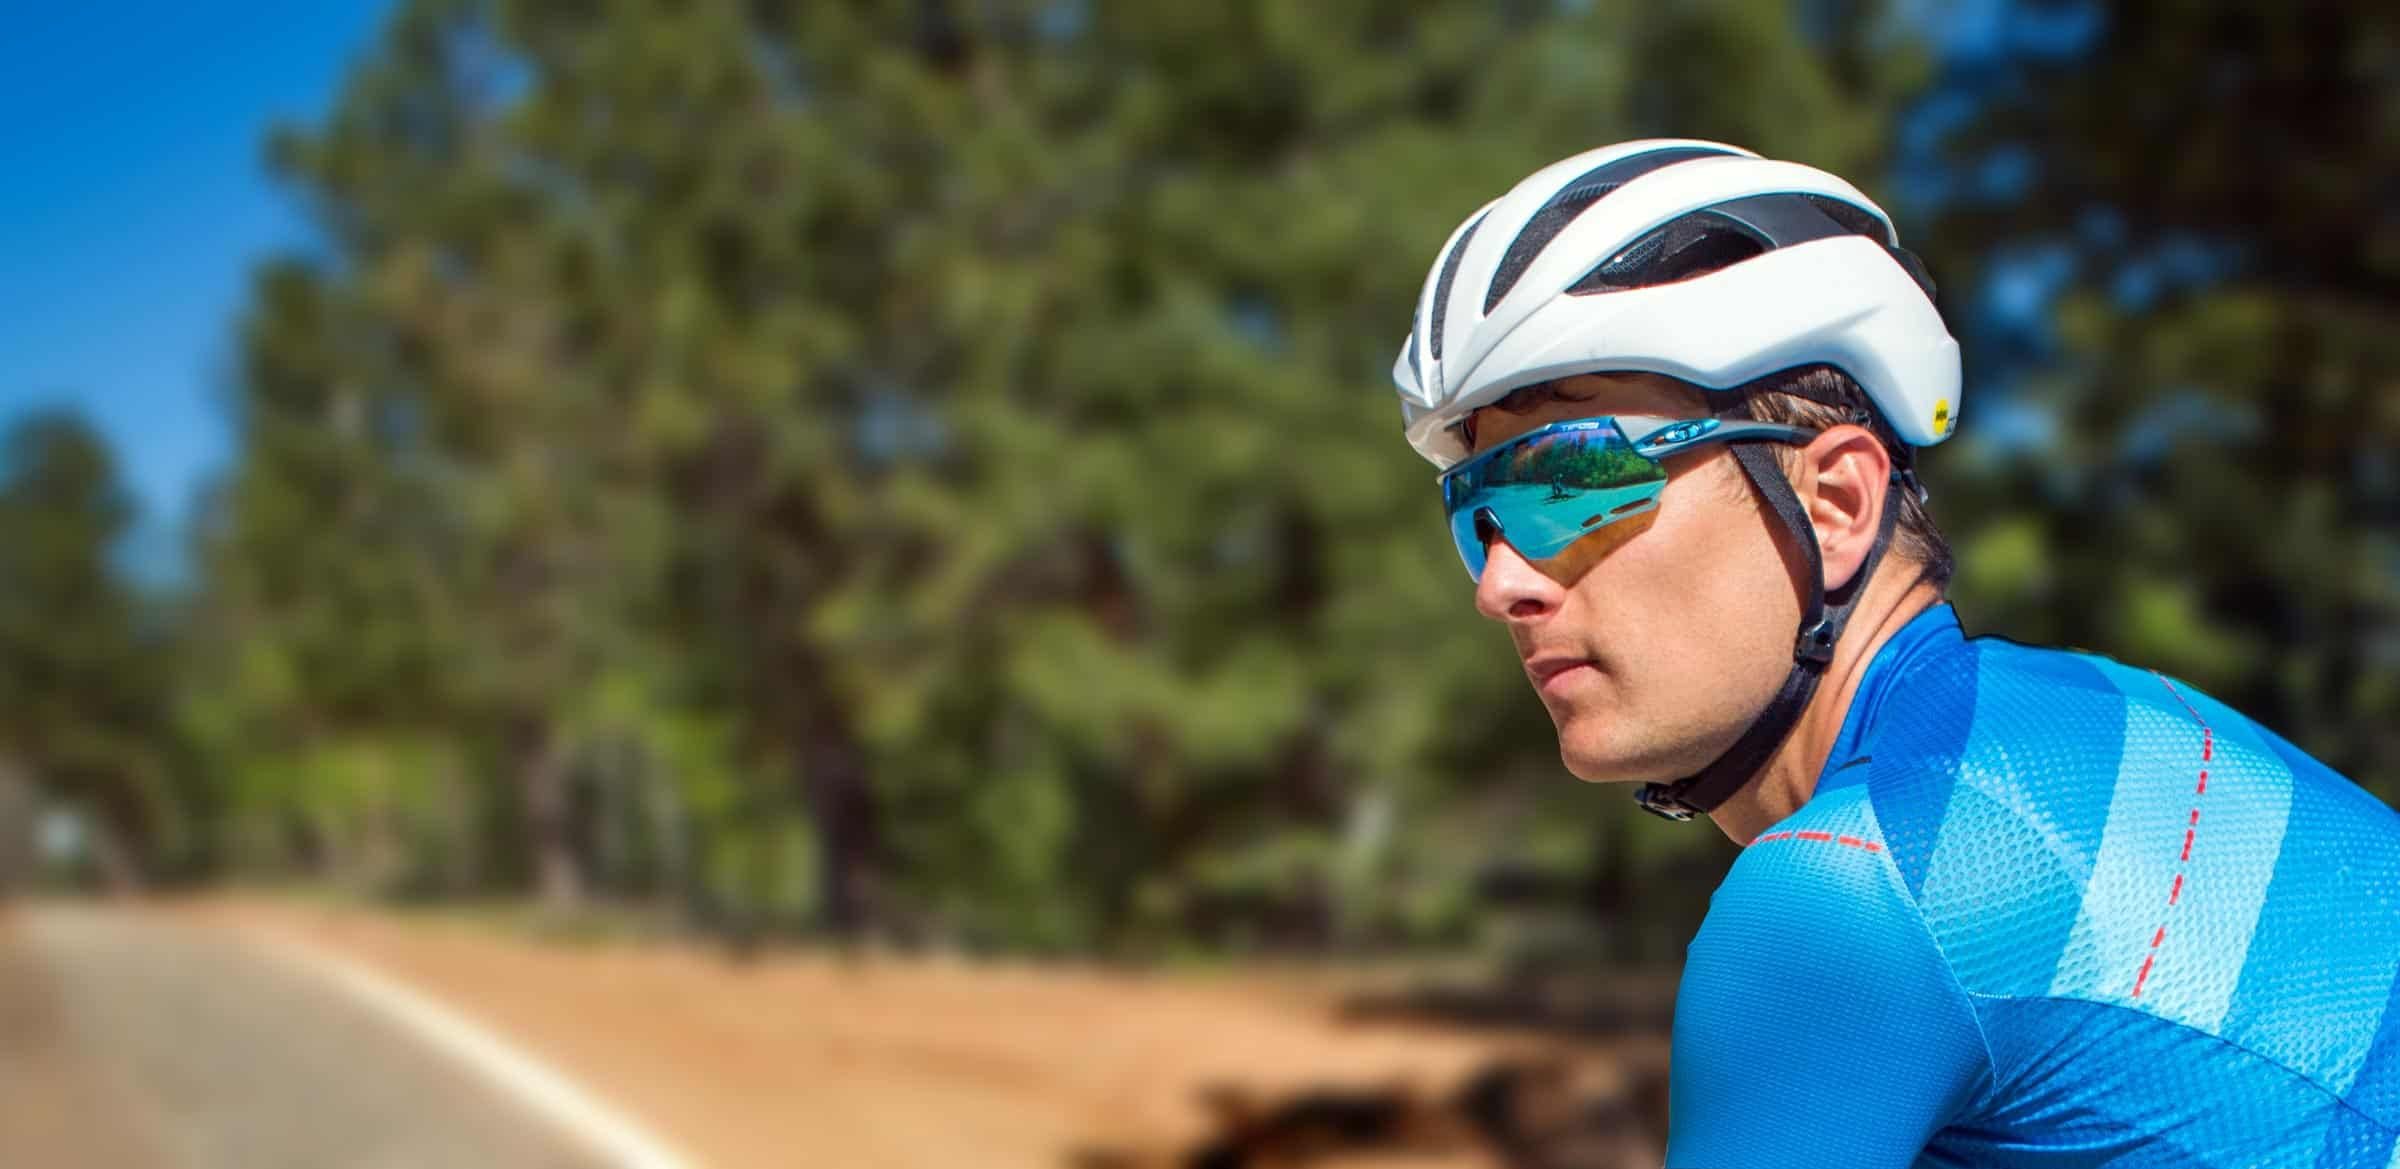 Discover The Best Mountain Bike Glasses 2020 To Protect Your Eyes